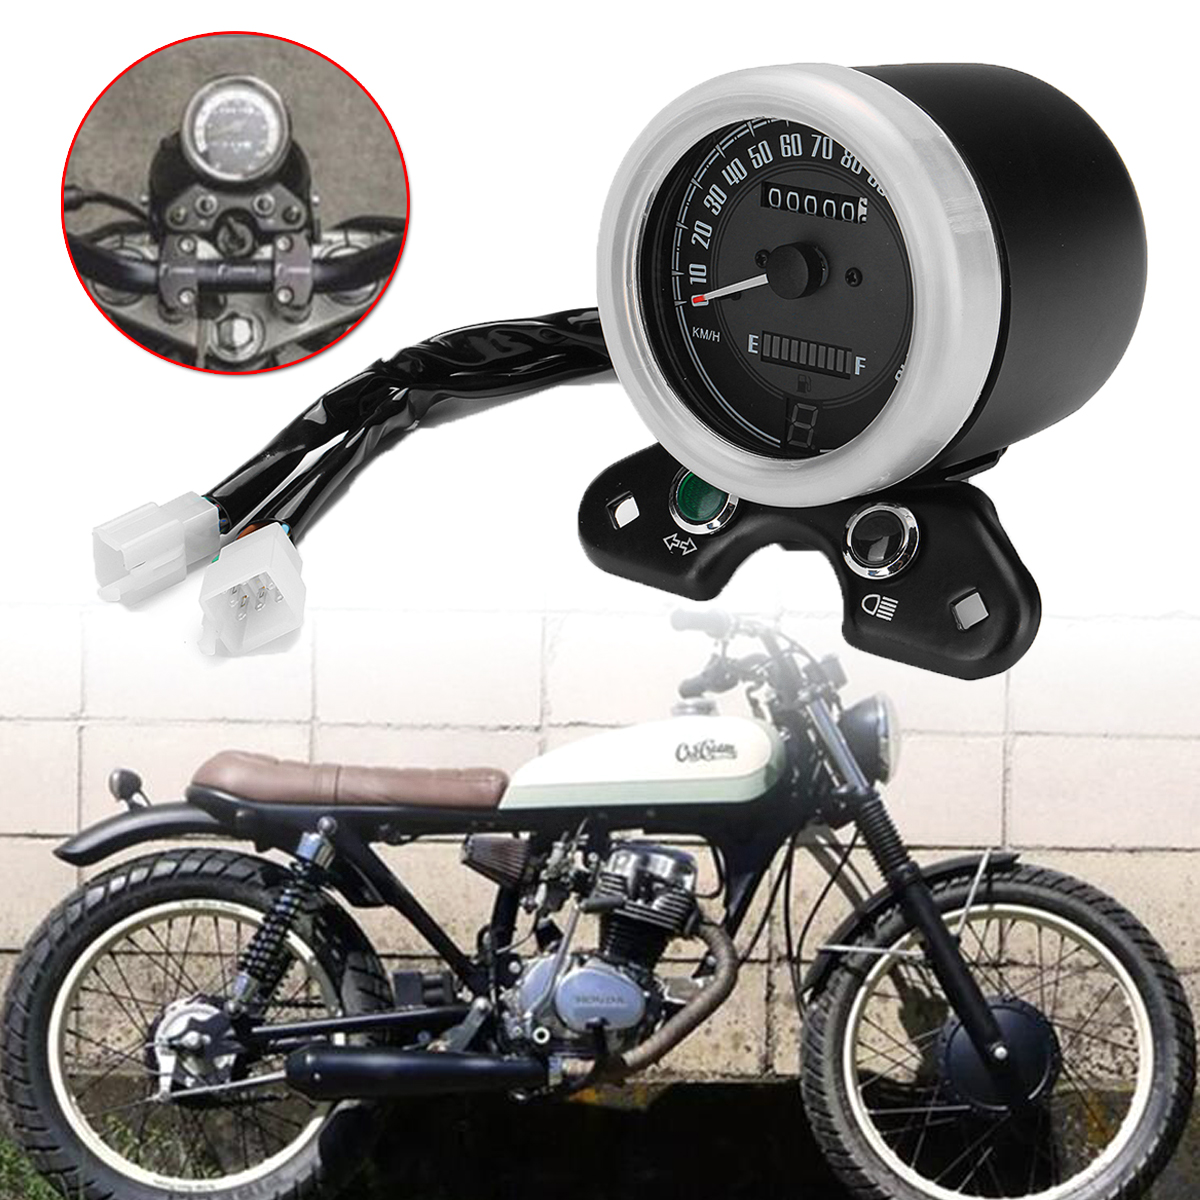 1x Motorcycle Retro Odometer Speedometer Oil Gauge LED Signal Light Odometer Gear Display USB Charger For Honda CG125 Cafe Racer old school motorcycle gauges